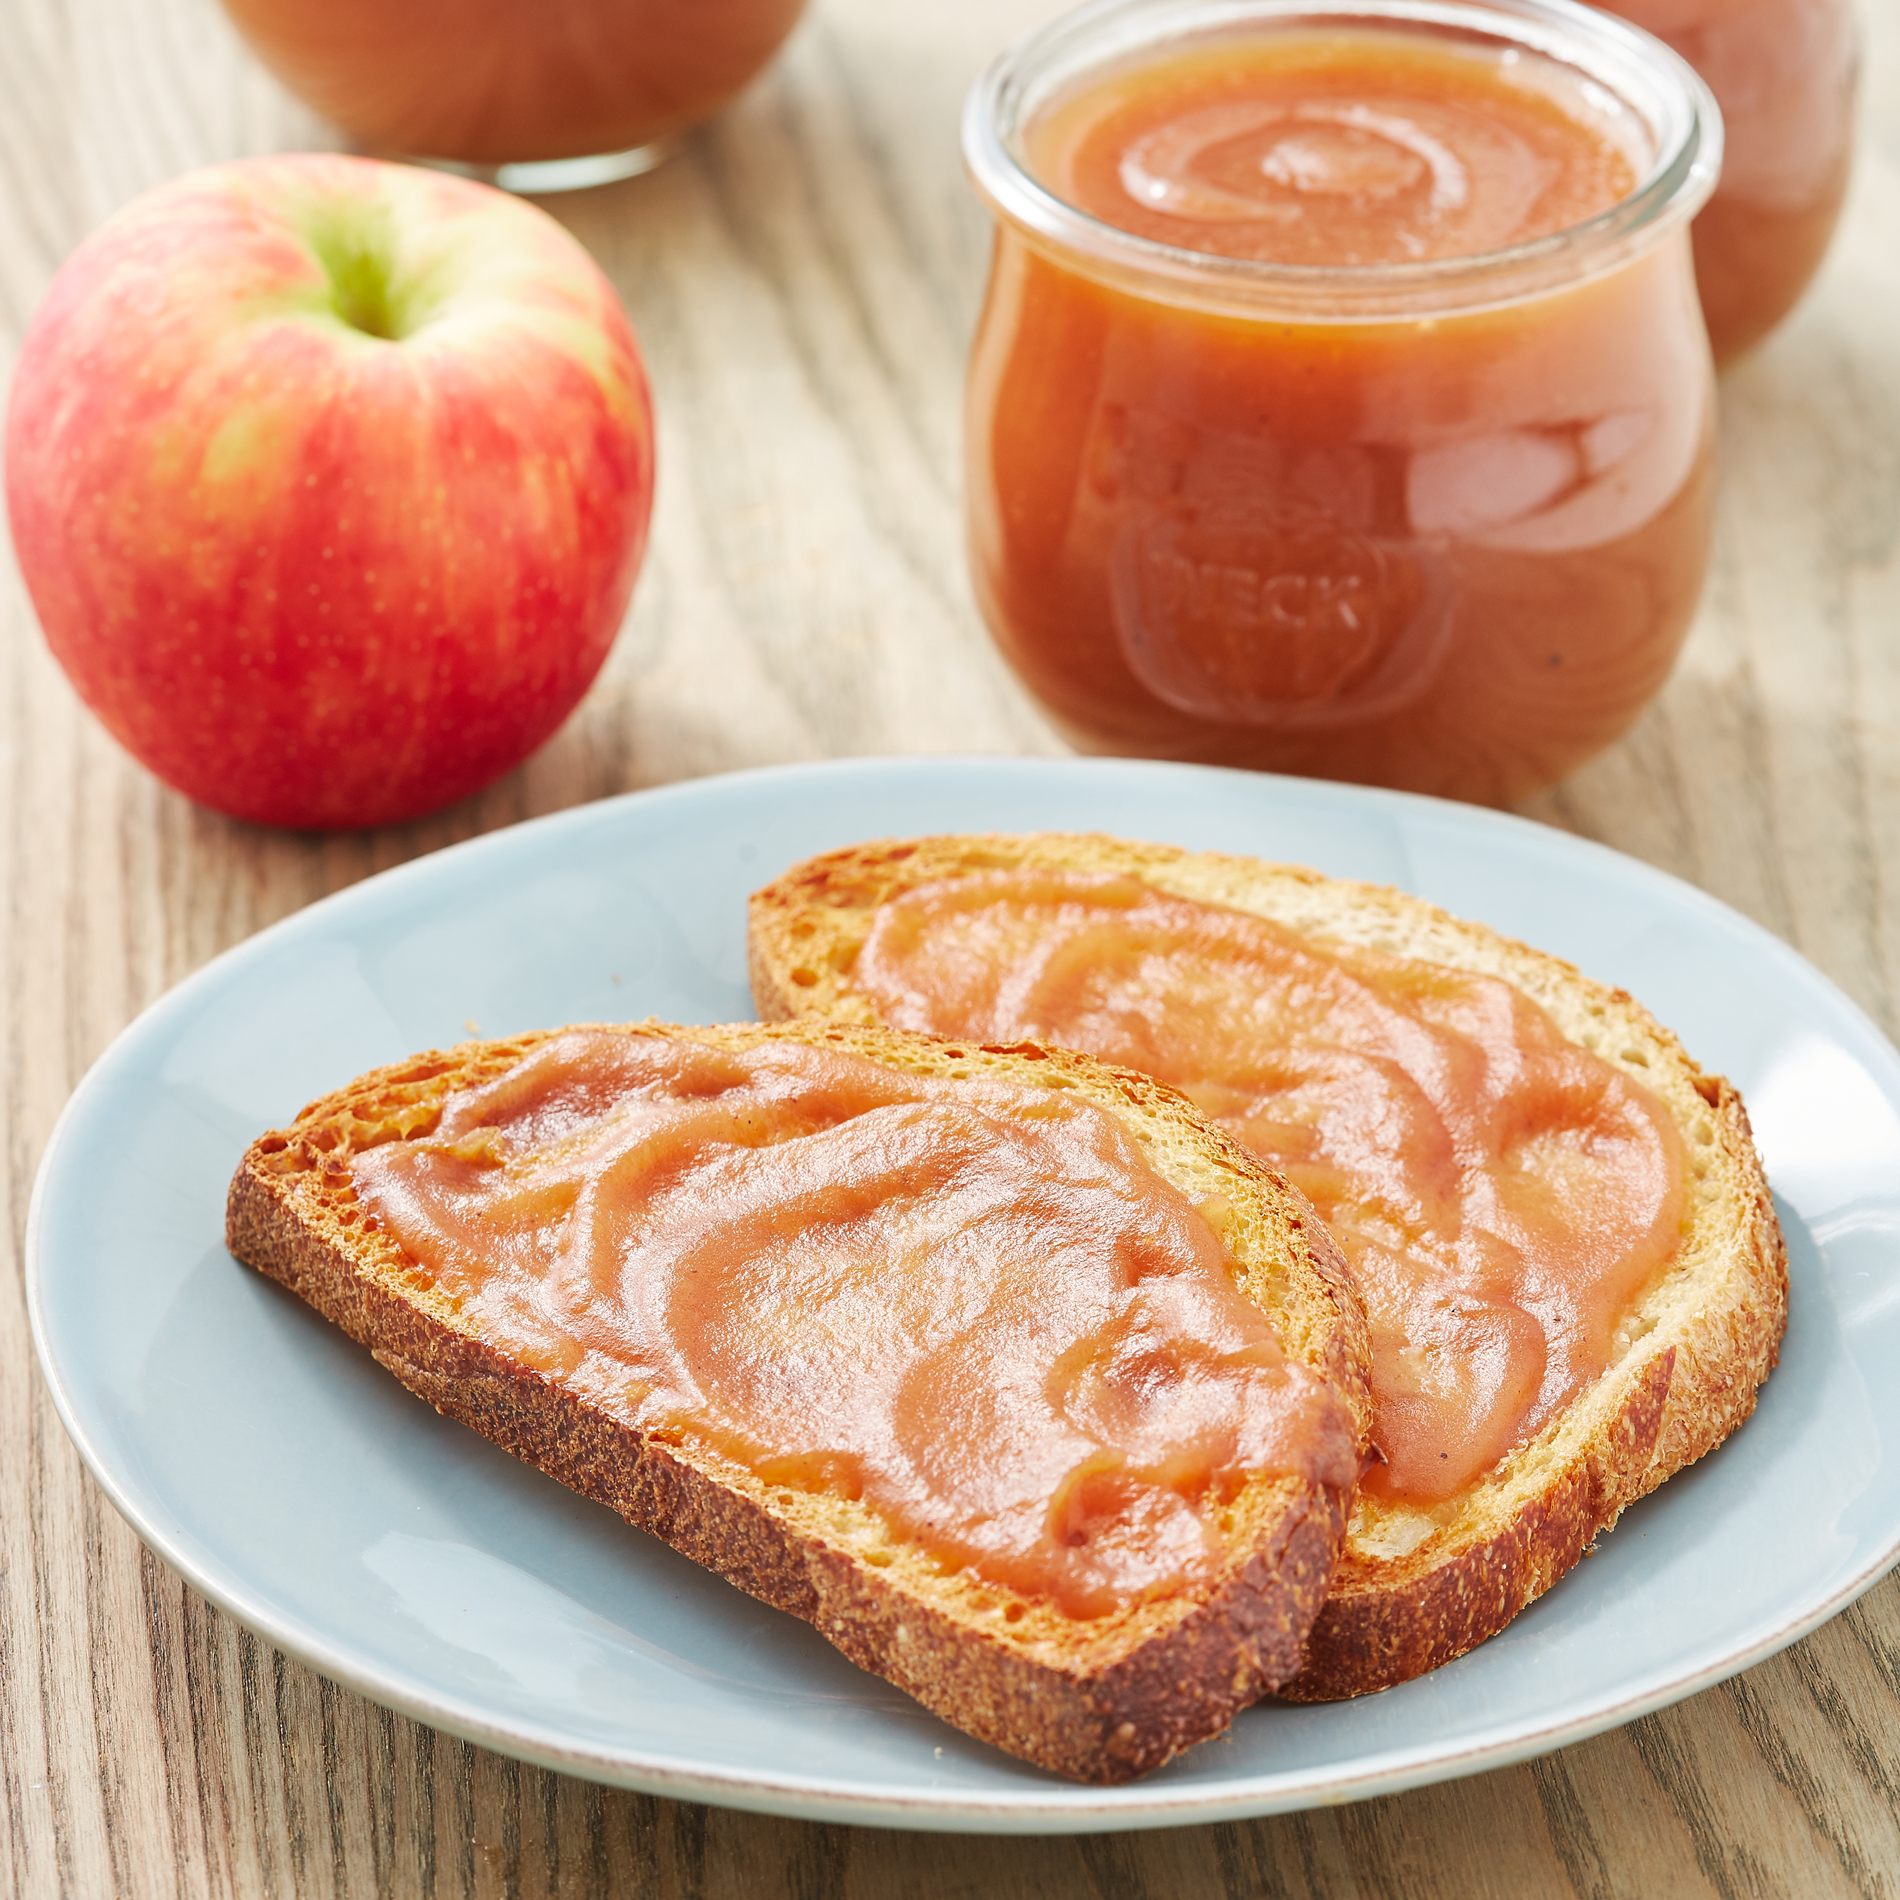 What to make with apple butter